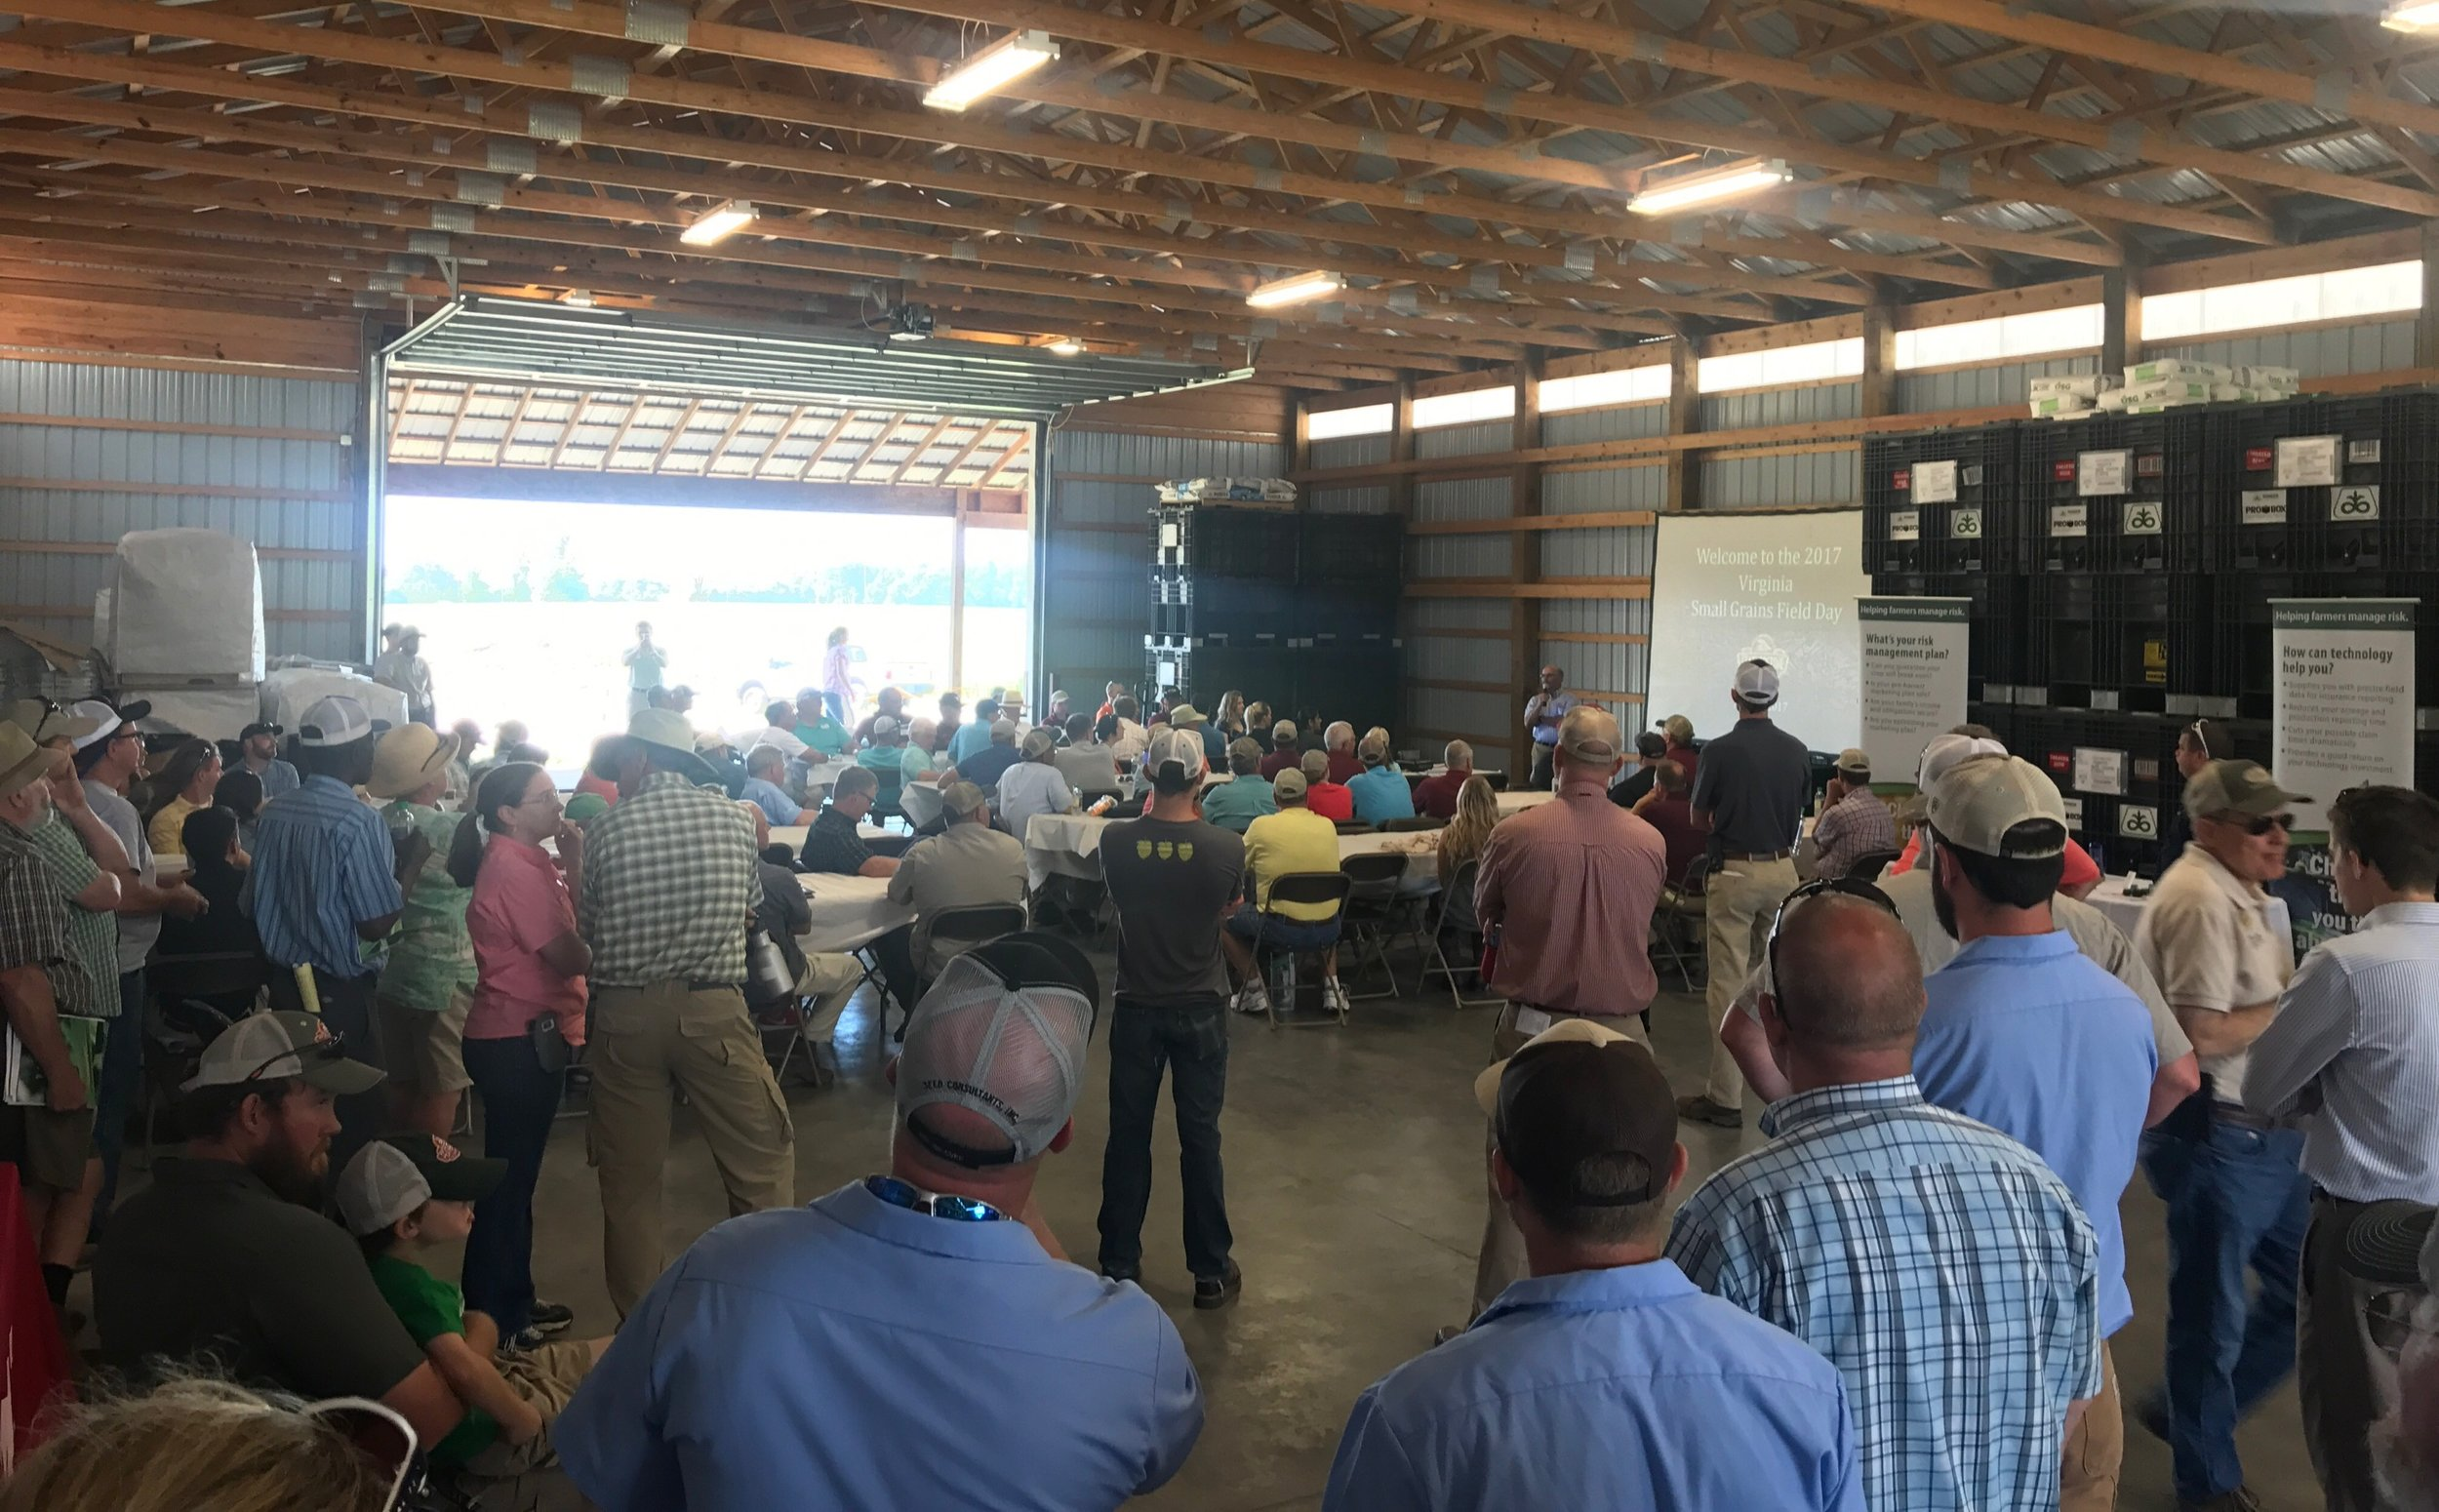 The indoor program covered many of the emerging opportunities for Virginia grain producers and end-users